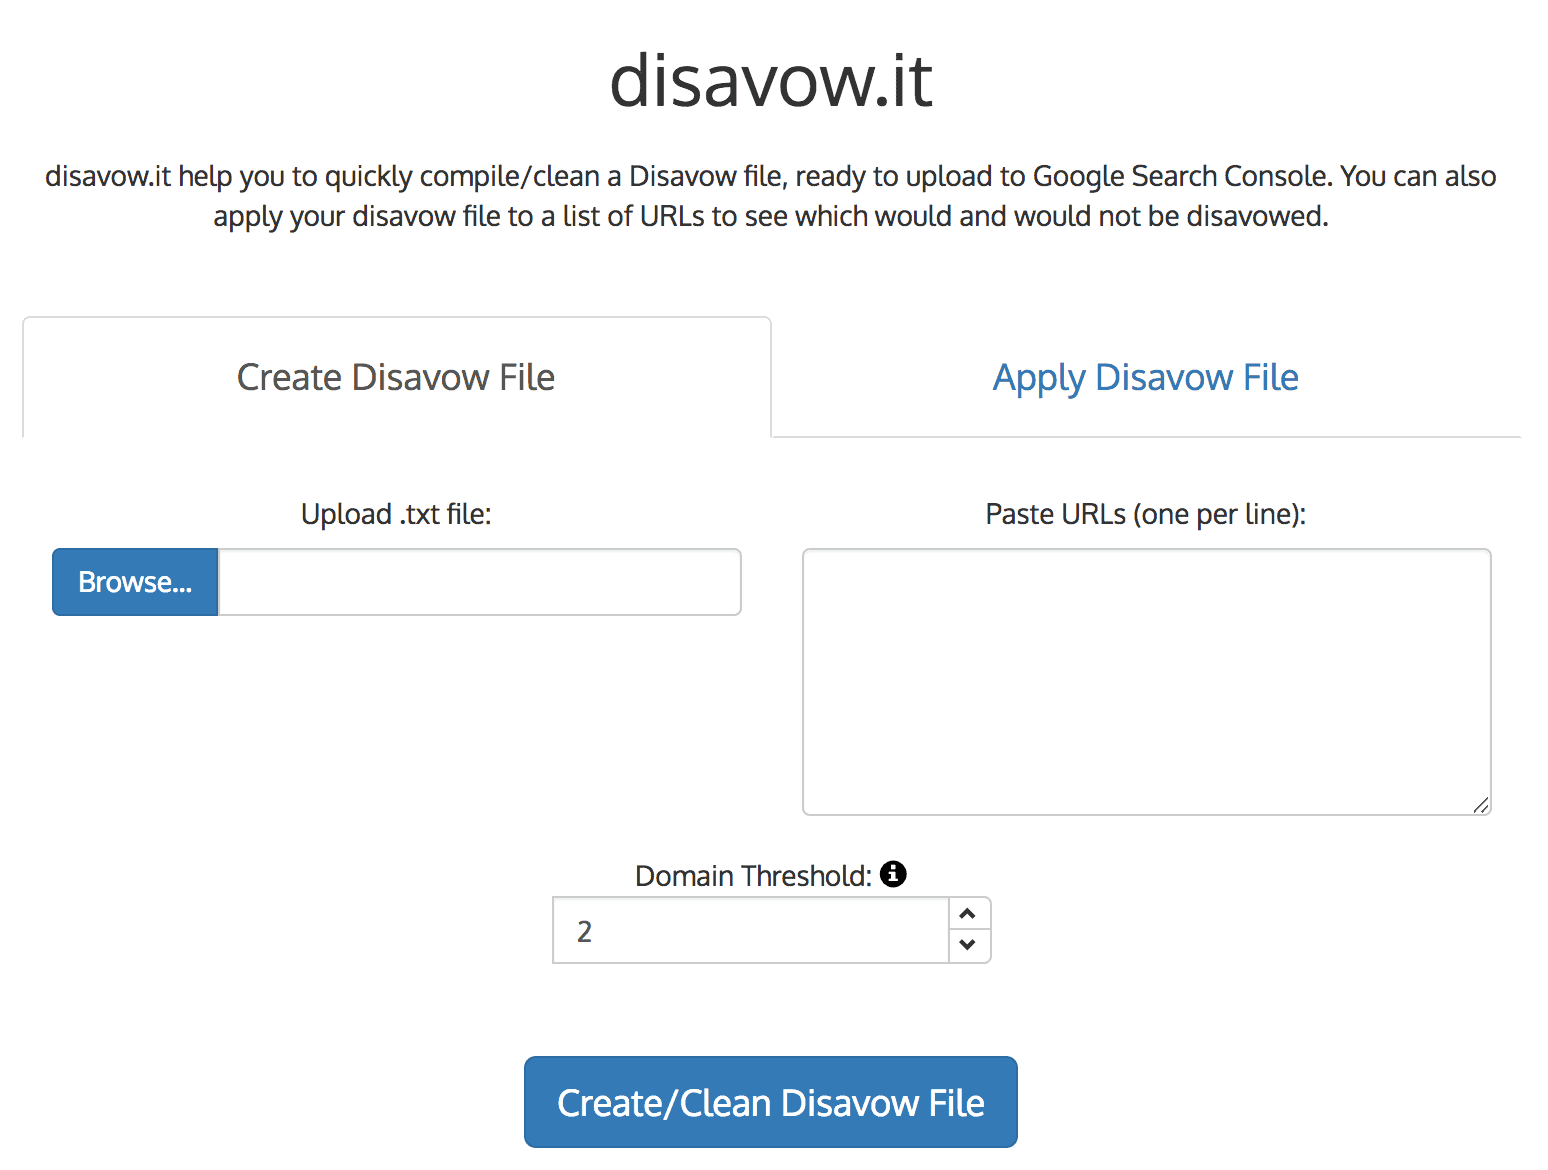 Disavow.it